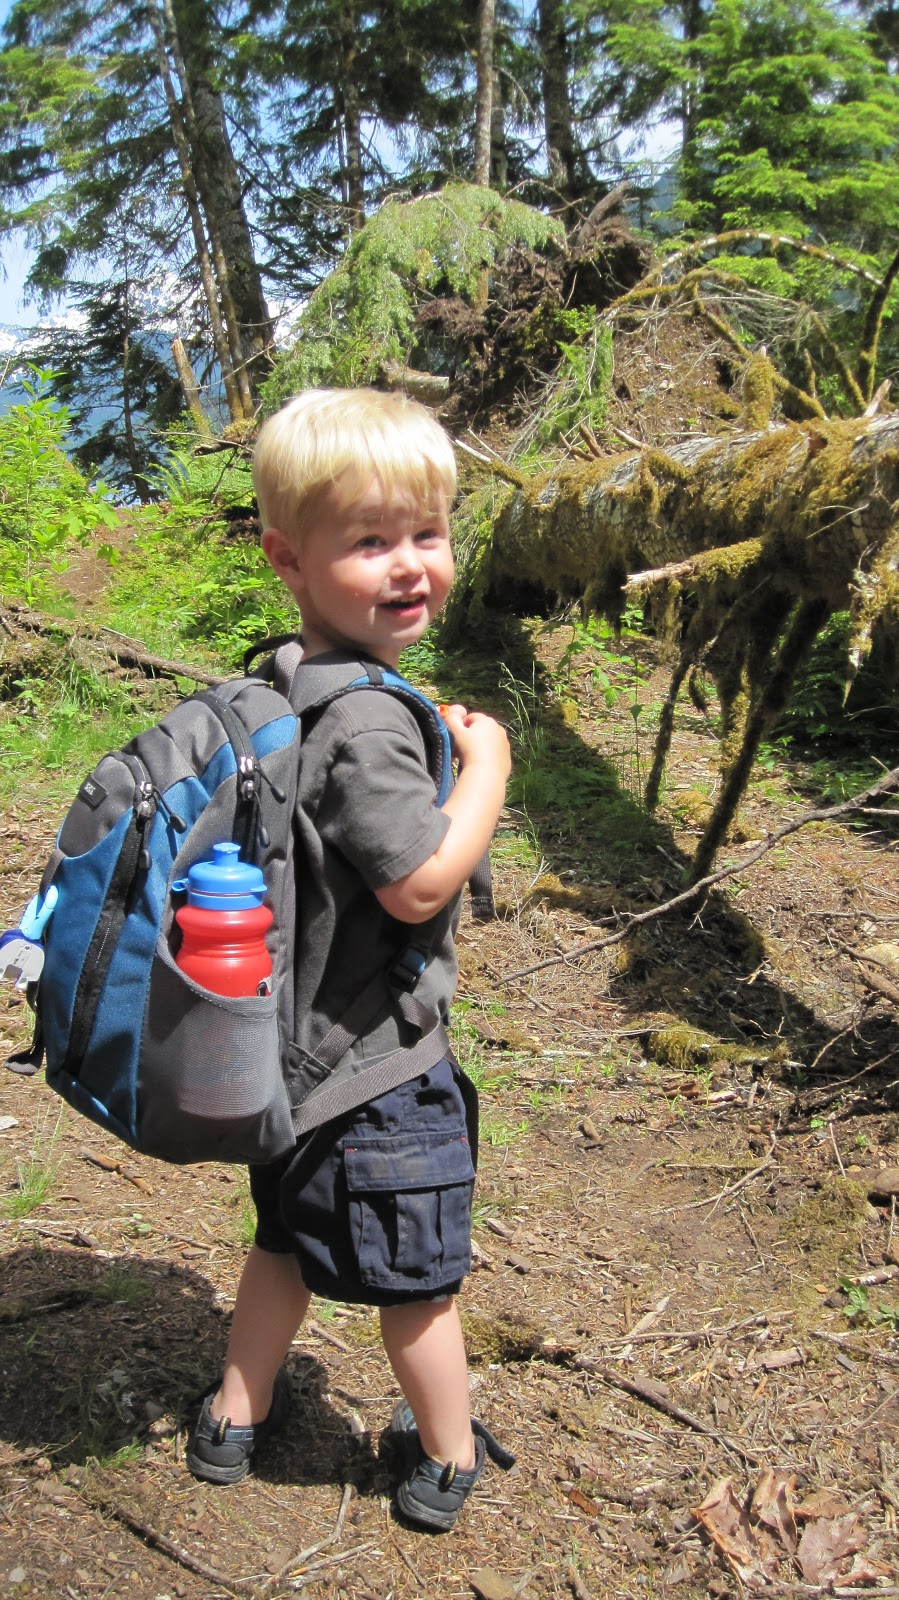 Hiking Backpack For Child - Crazy Backpacks